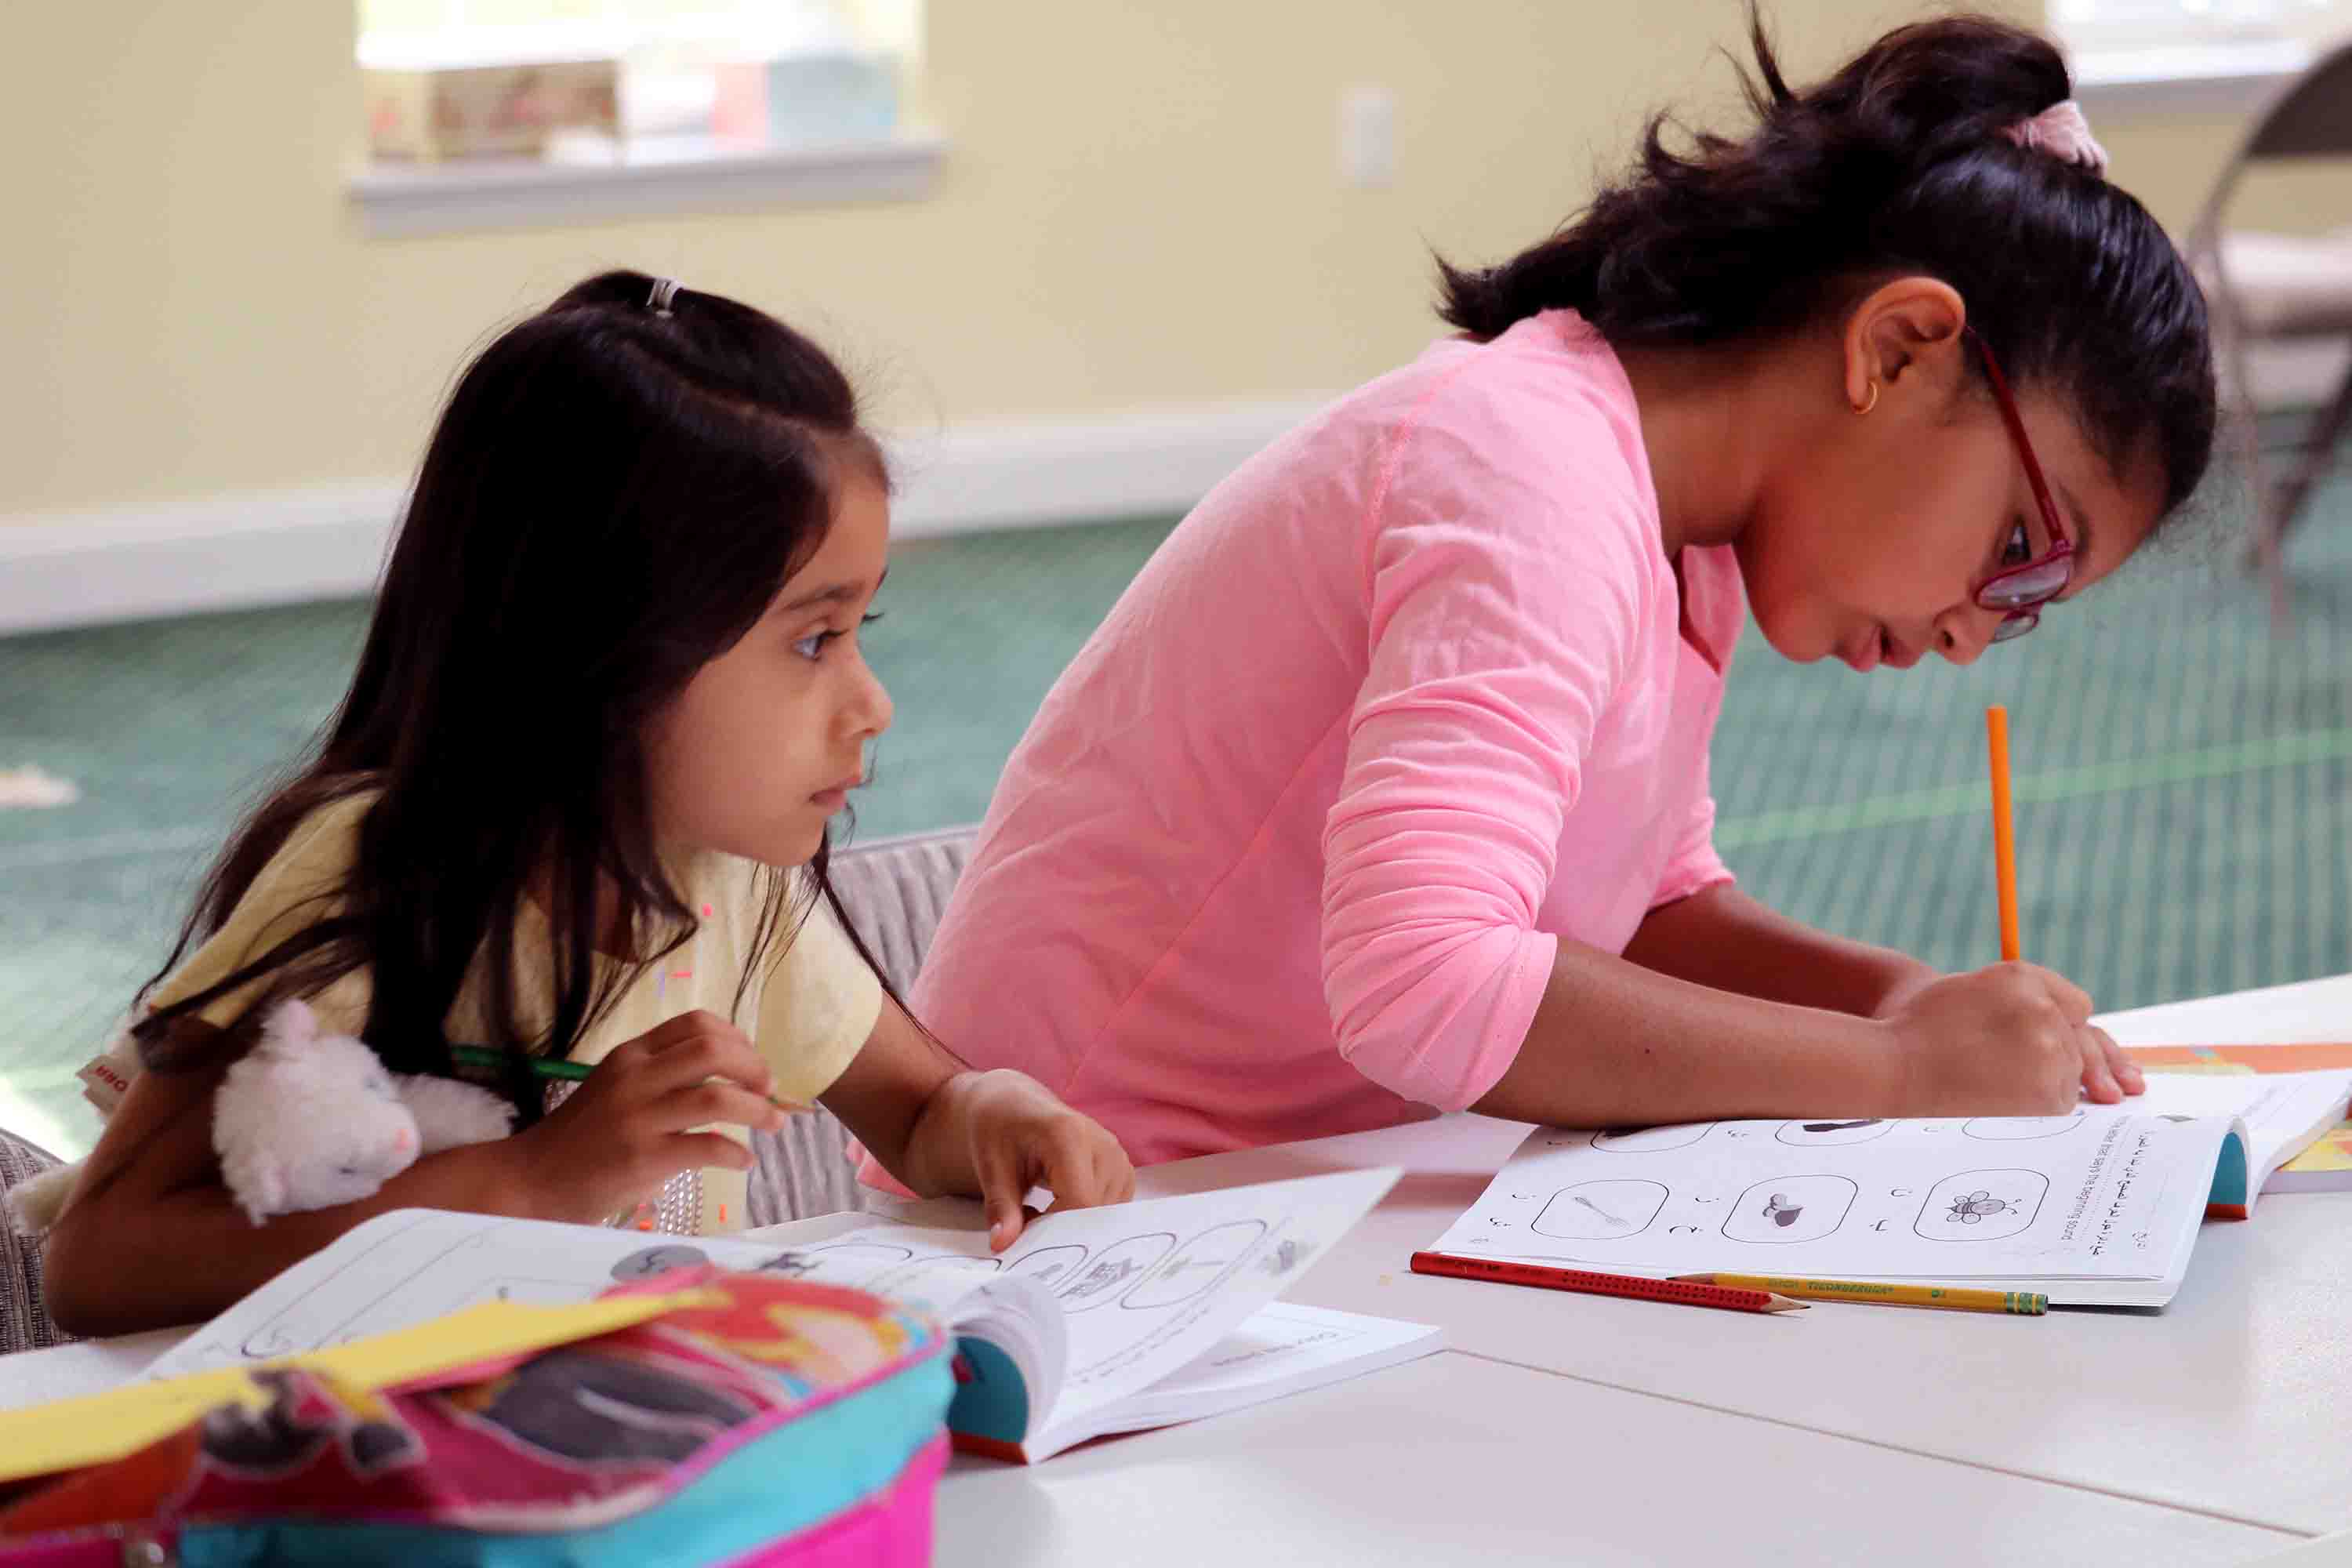 Two young girls complete assignments in workbooks